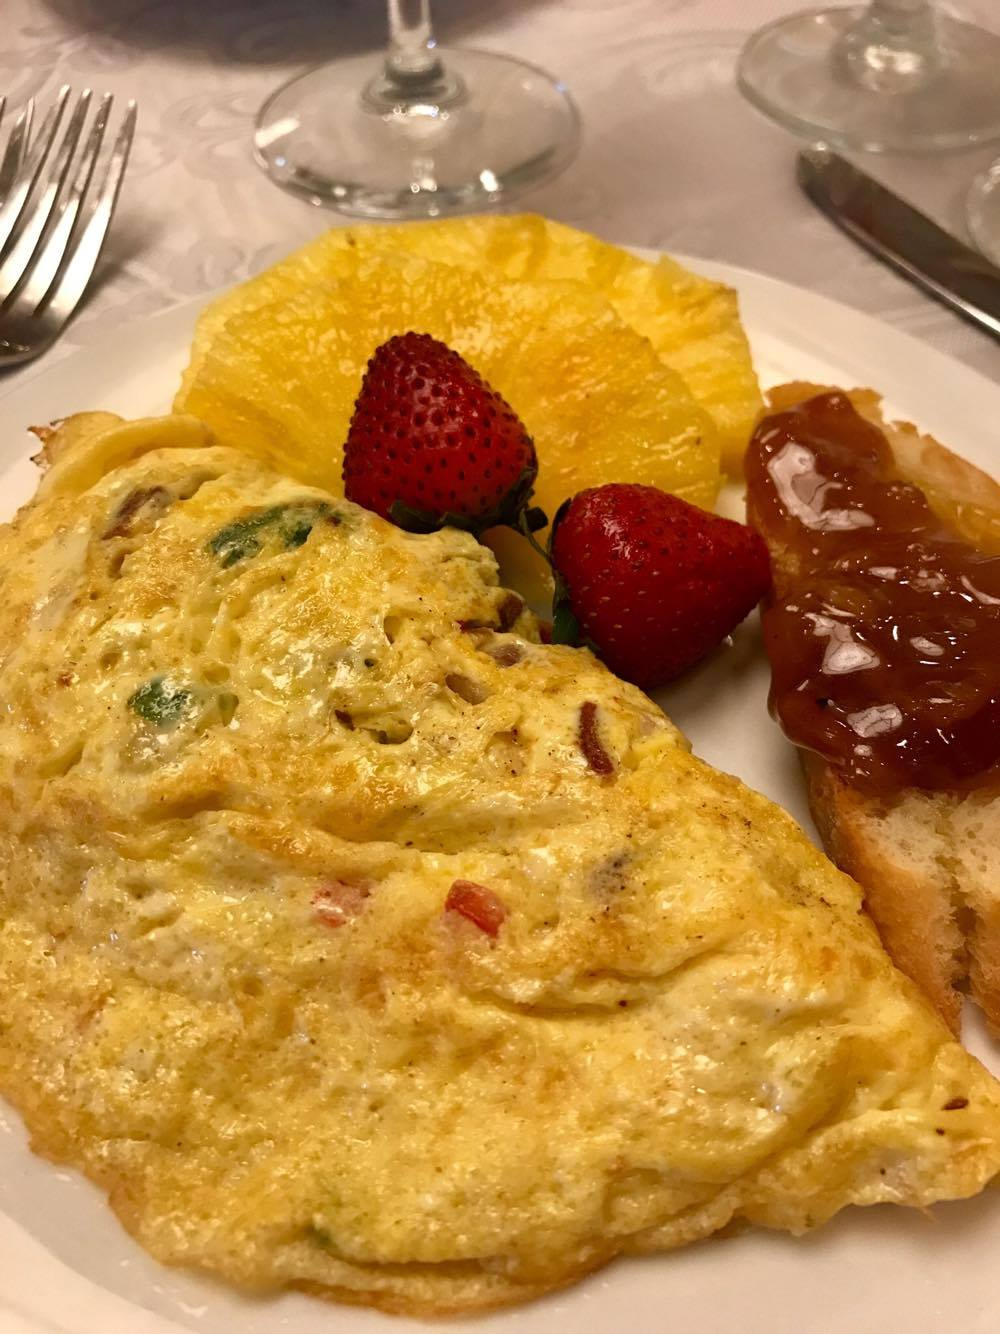 Spiritual Brunch - Omlette Fruit Bacon Jam - St Simons Island Food Spirits Festival